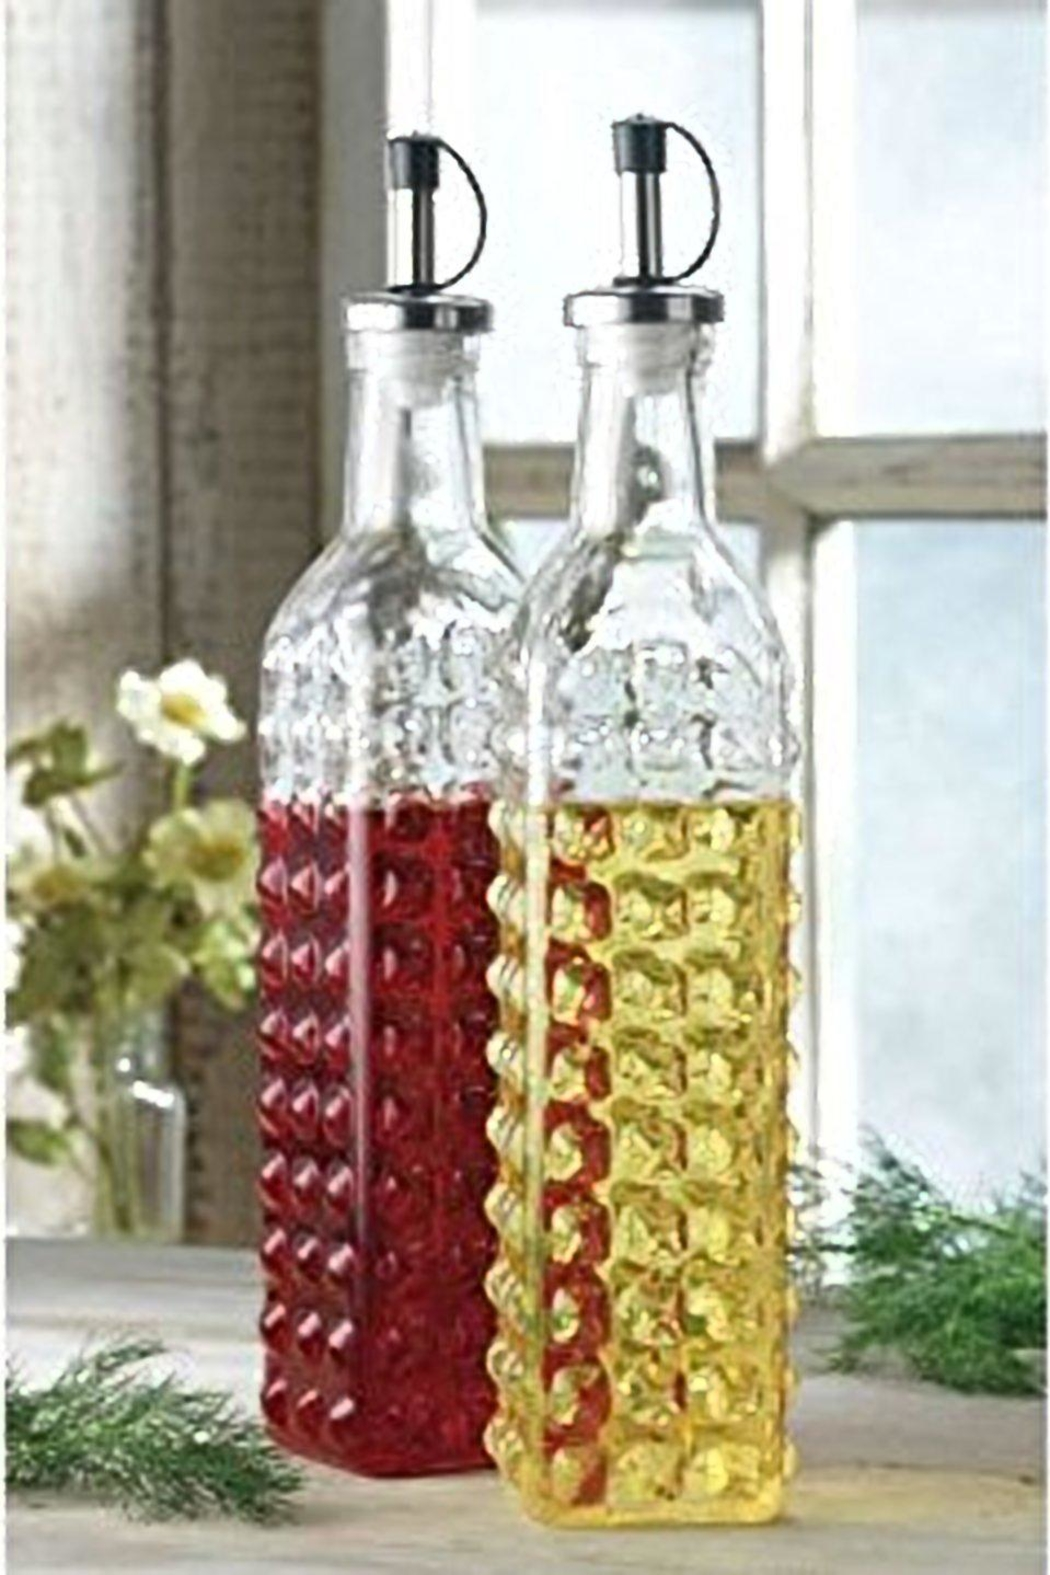 Home Essentials Oil Vinegar Set - Main Image